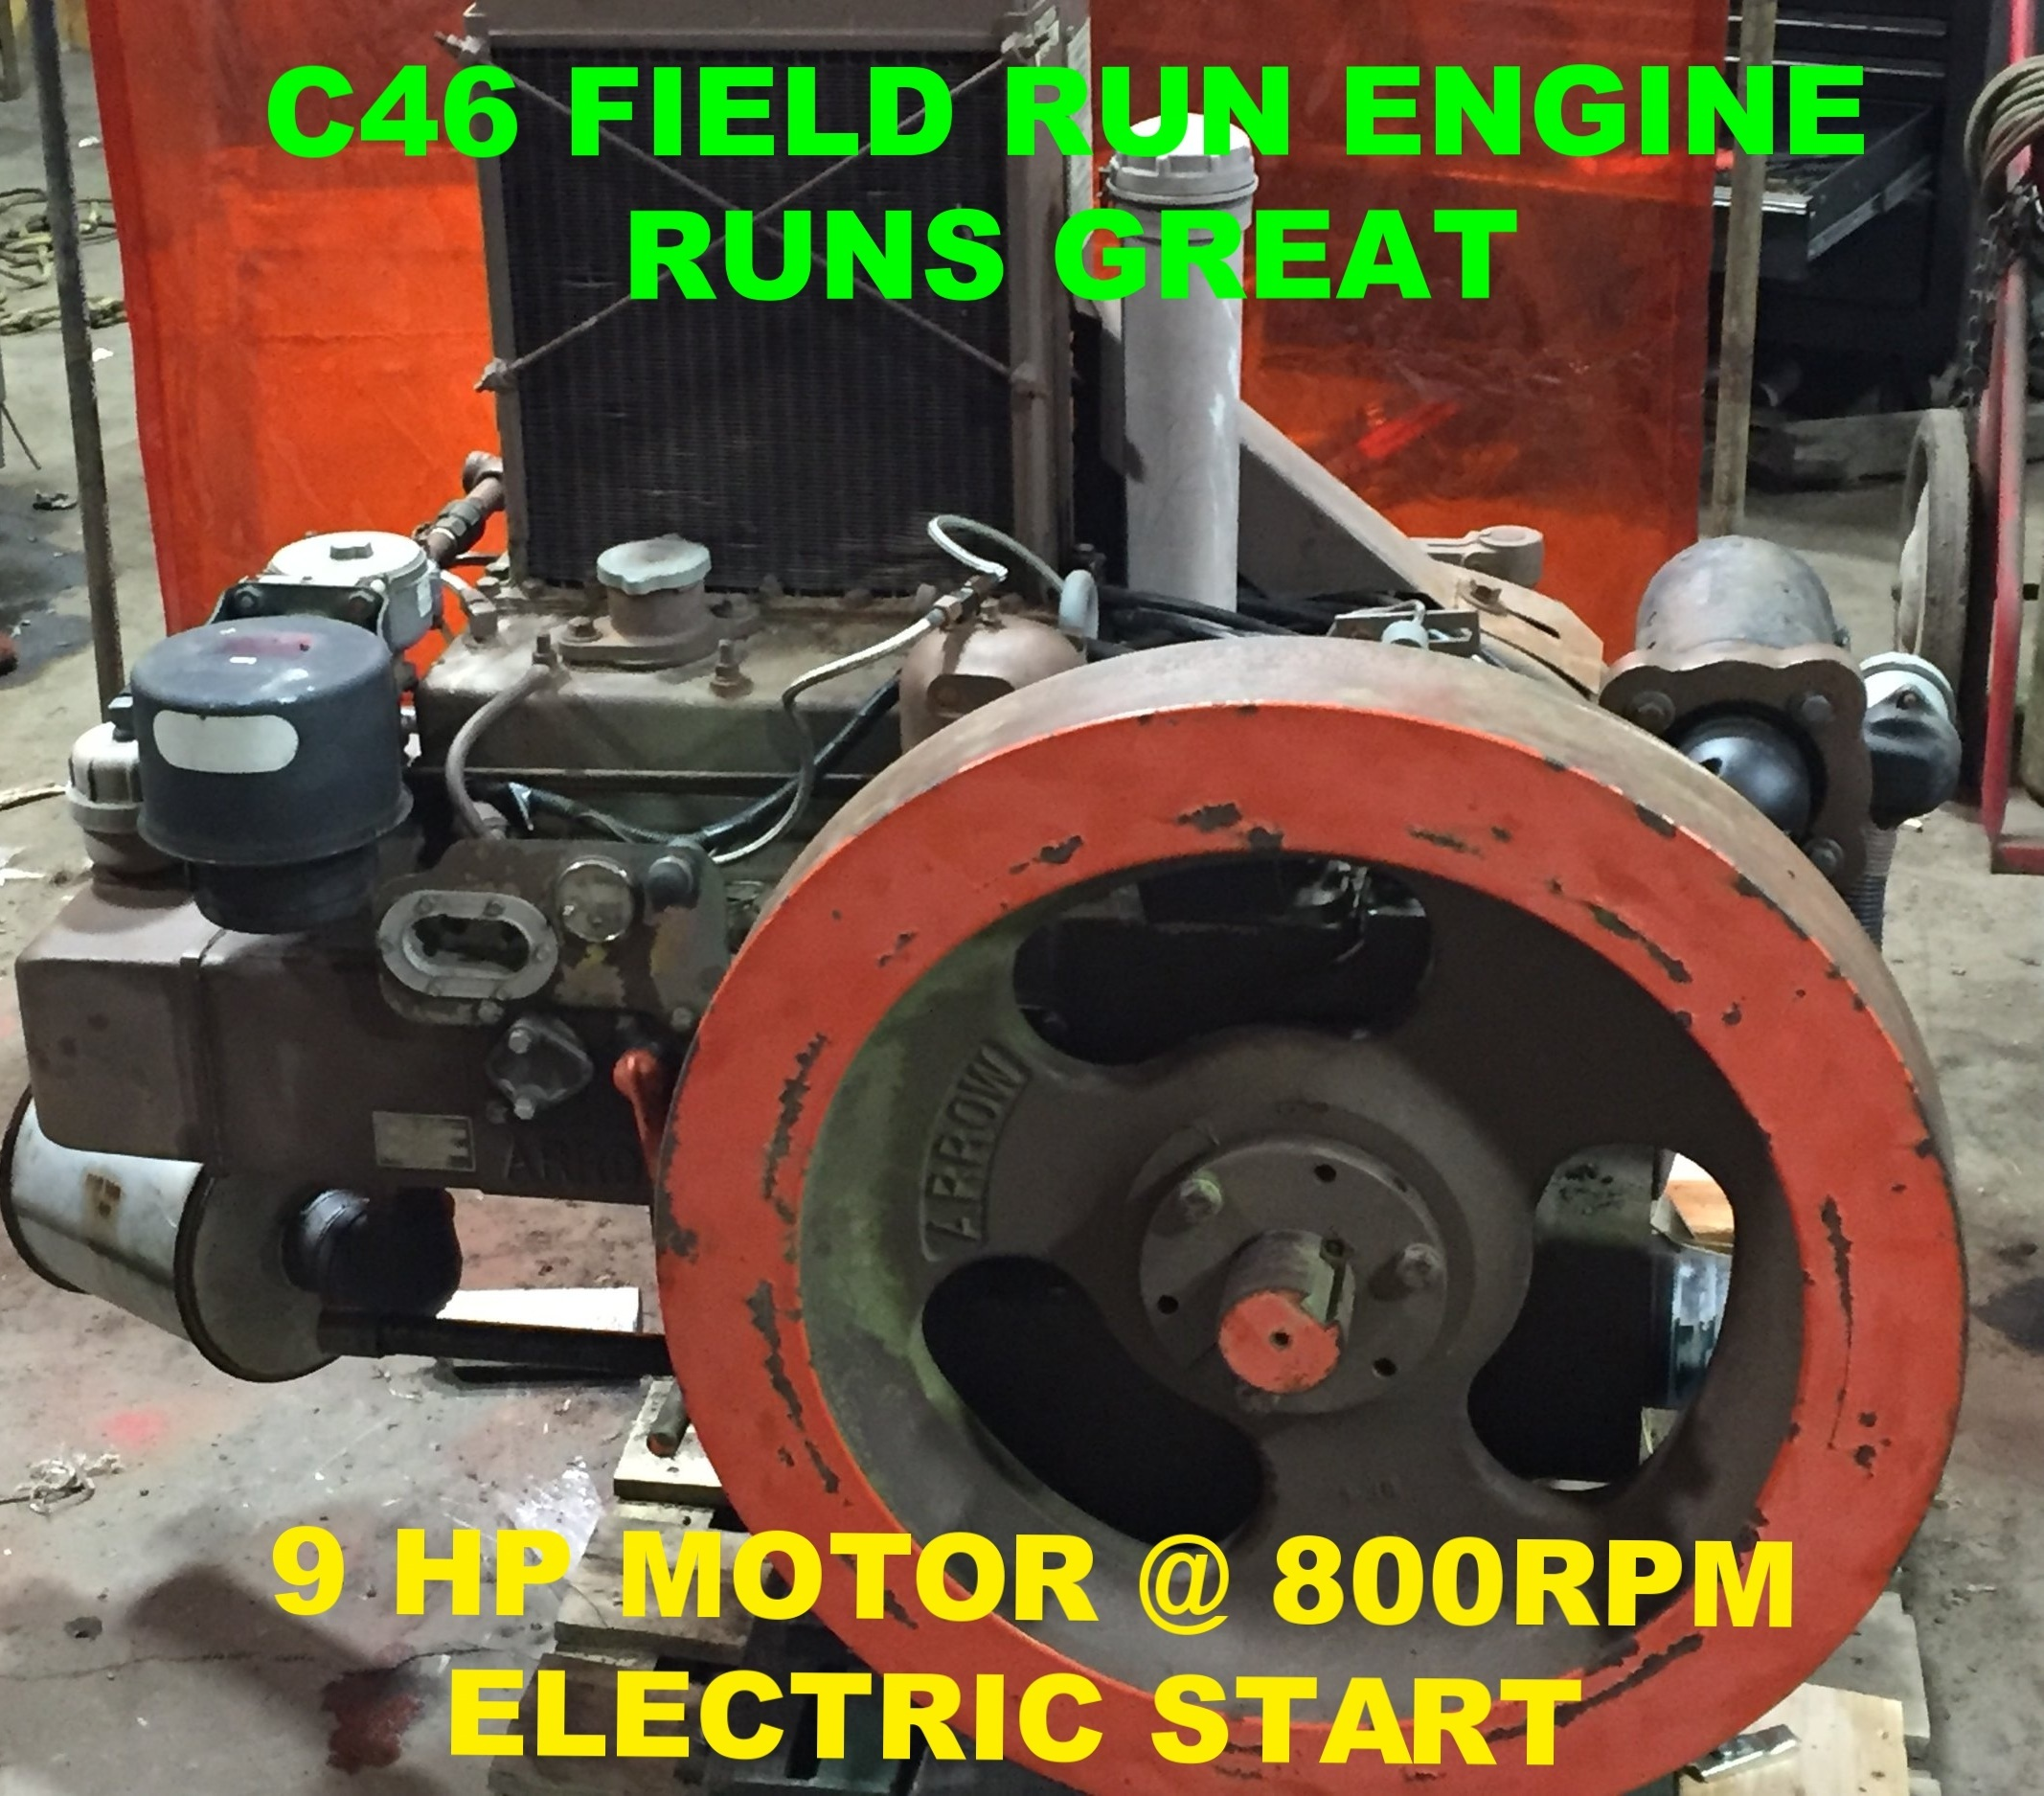 GREAT BUY - CALL OR EMAIL $CAN SEND VIDEO OF ENGINE RUNNINGONLY 2 LEFTTHESE ARE PRESSURIZED OIL SYSTEMMUCH LESS WEAR AND TEAR THAN YOUR OLDRER MODELSWET SLEEVESTWO PENDING REBUILD